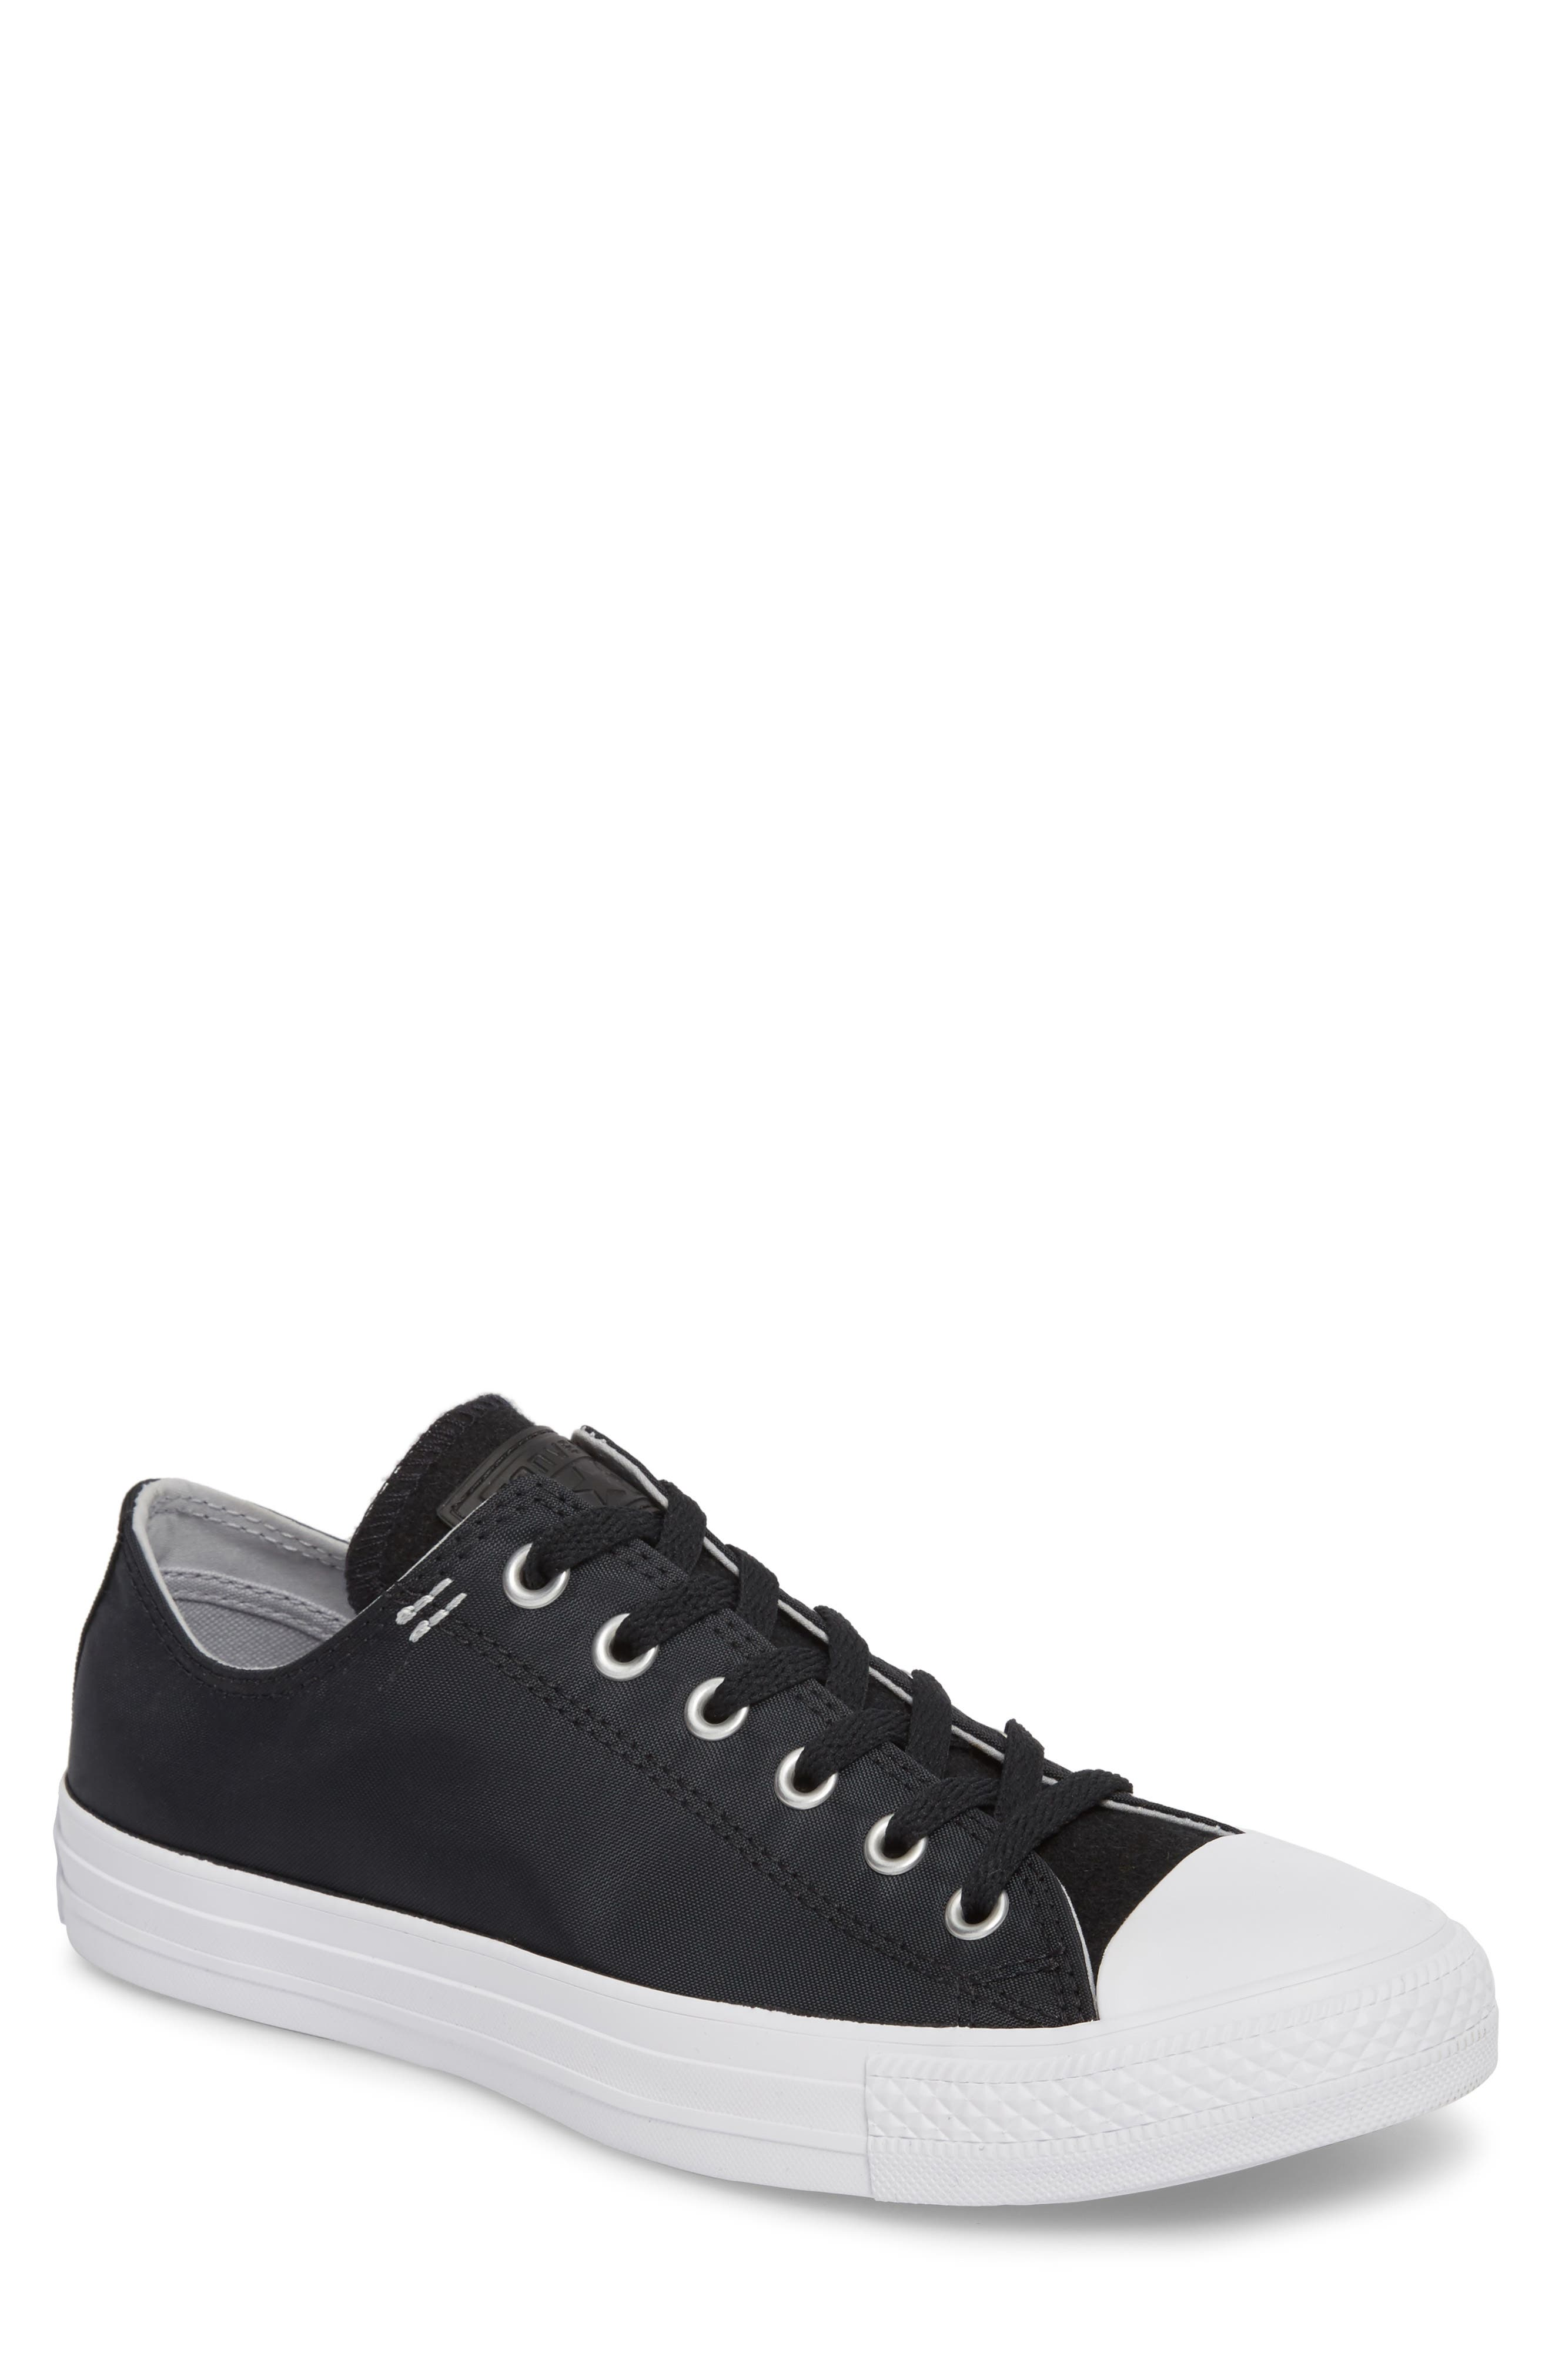 All Star<sup>®</sup> OX Low Top Sneaker,                             Main thumbnail 1, color,                             001